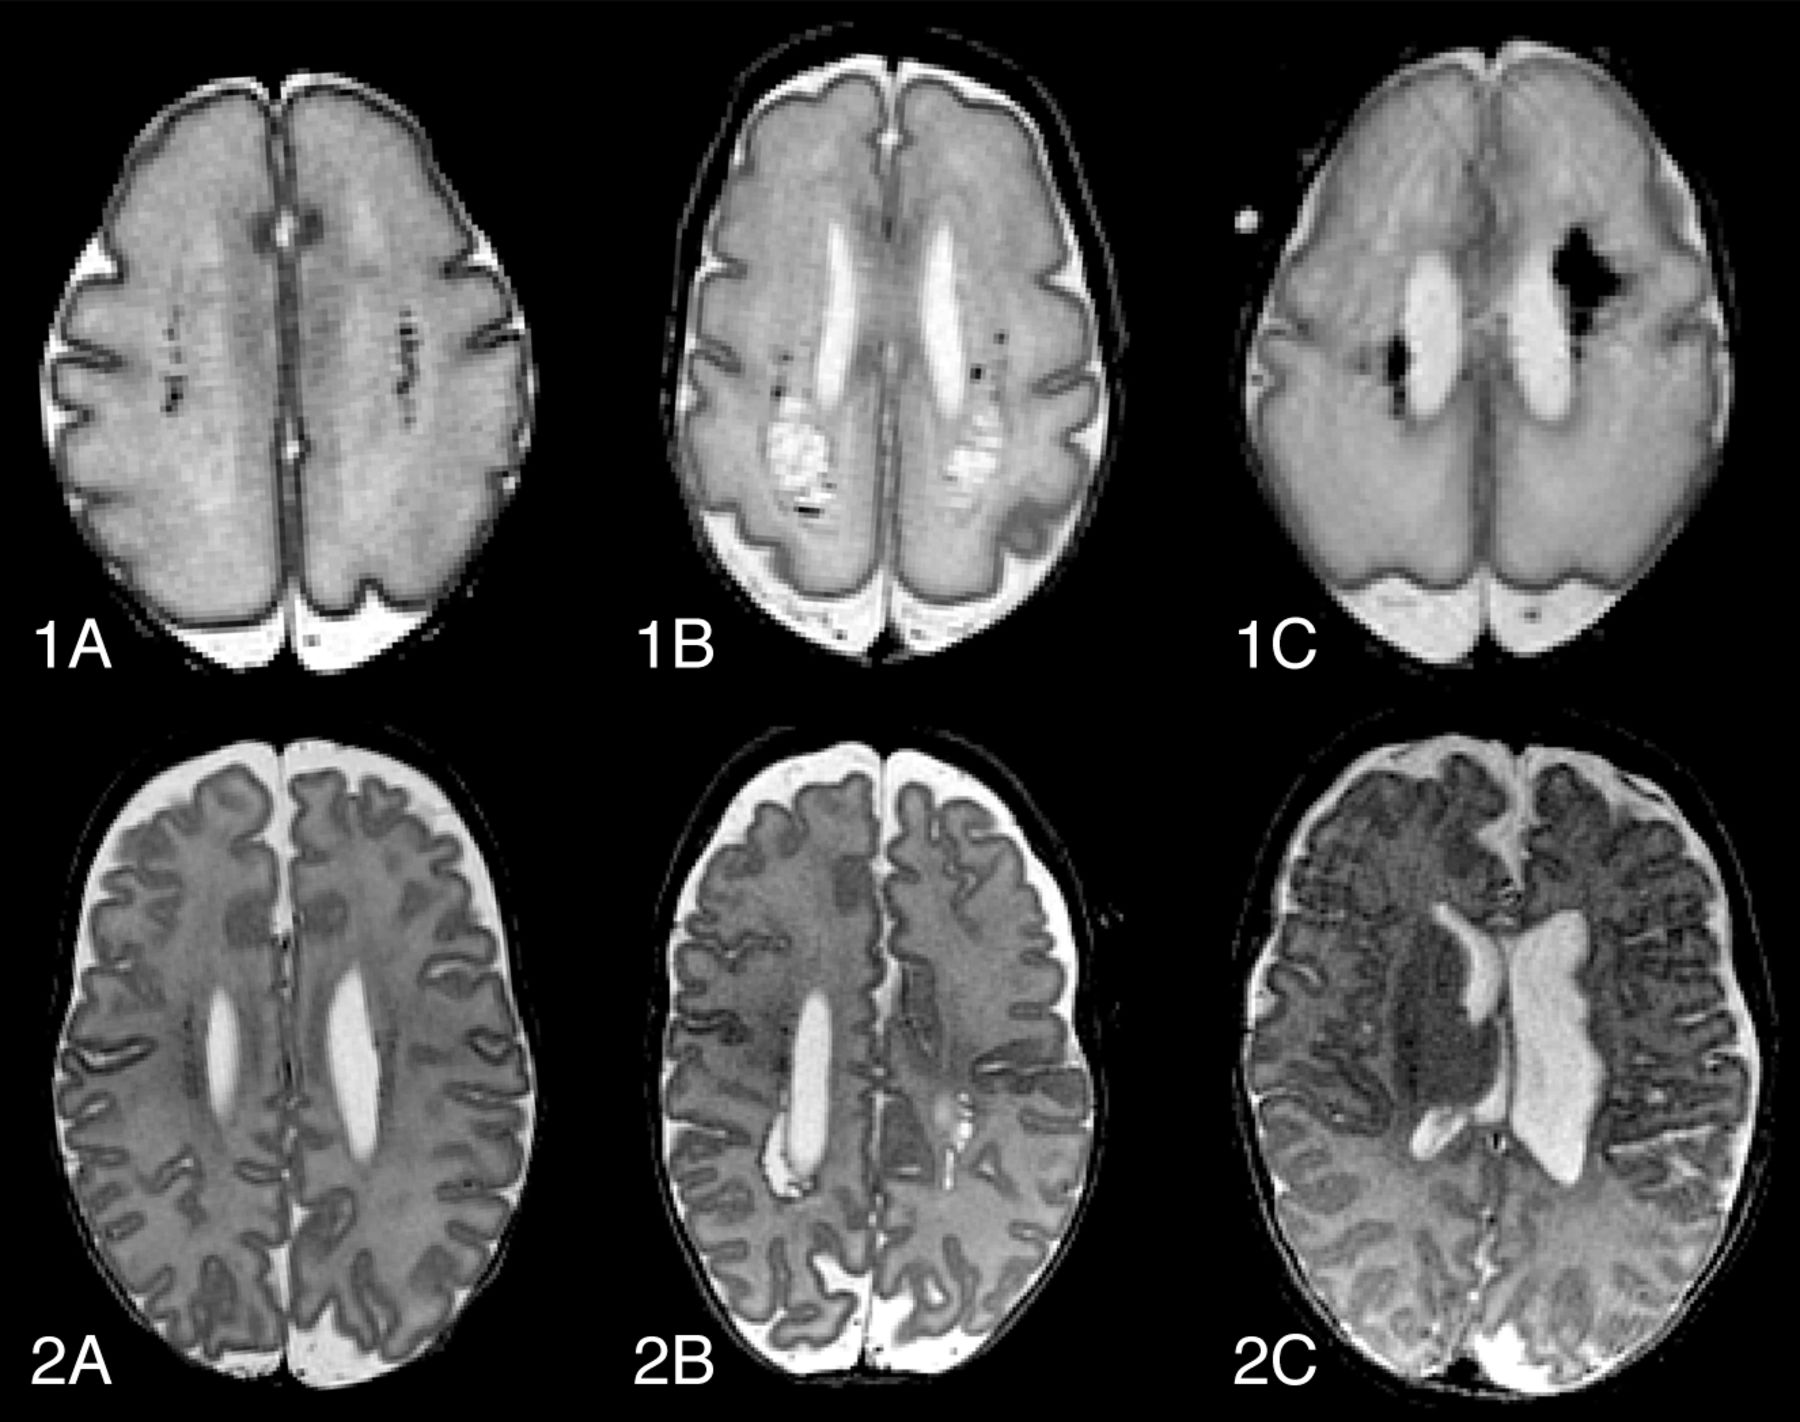 Optimal Timing Of Cerebral Mri In Preterm Infants To Predict Long Term Neurodevelopmental